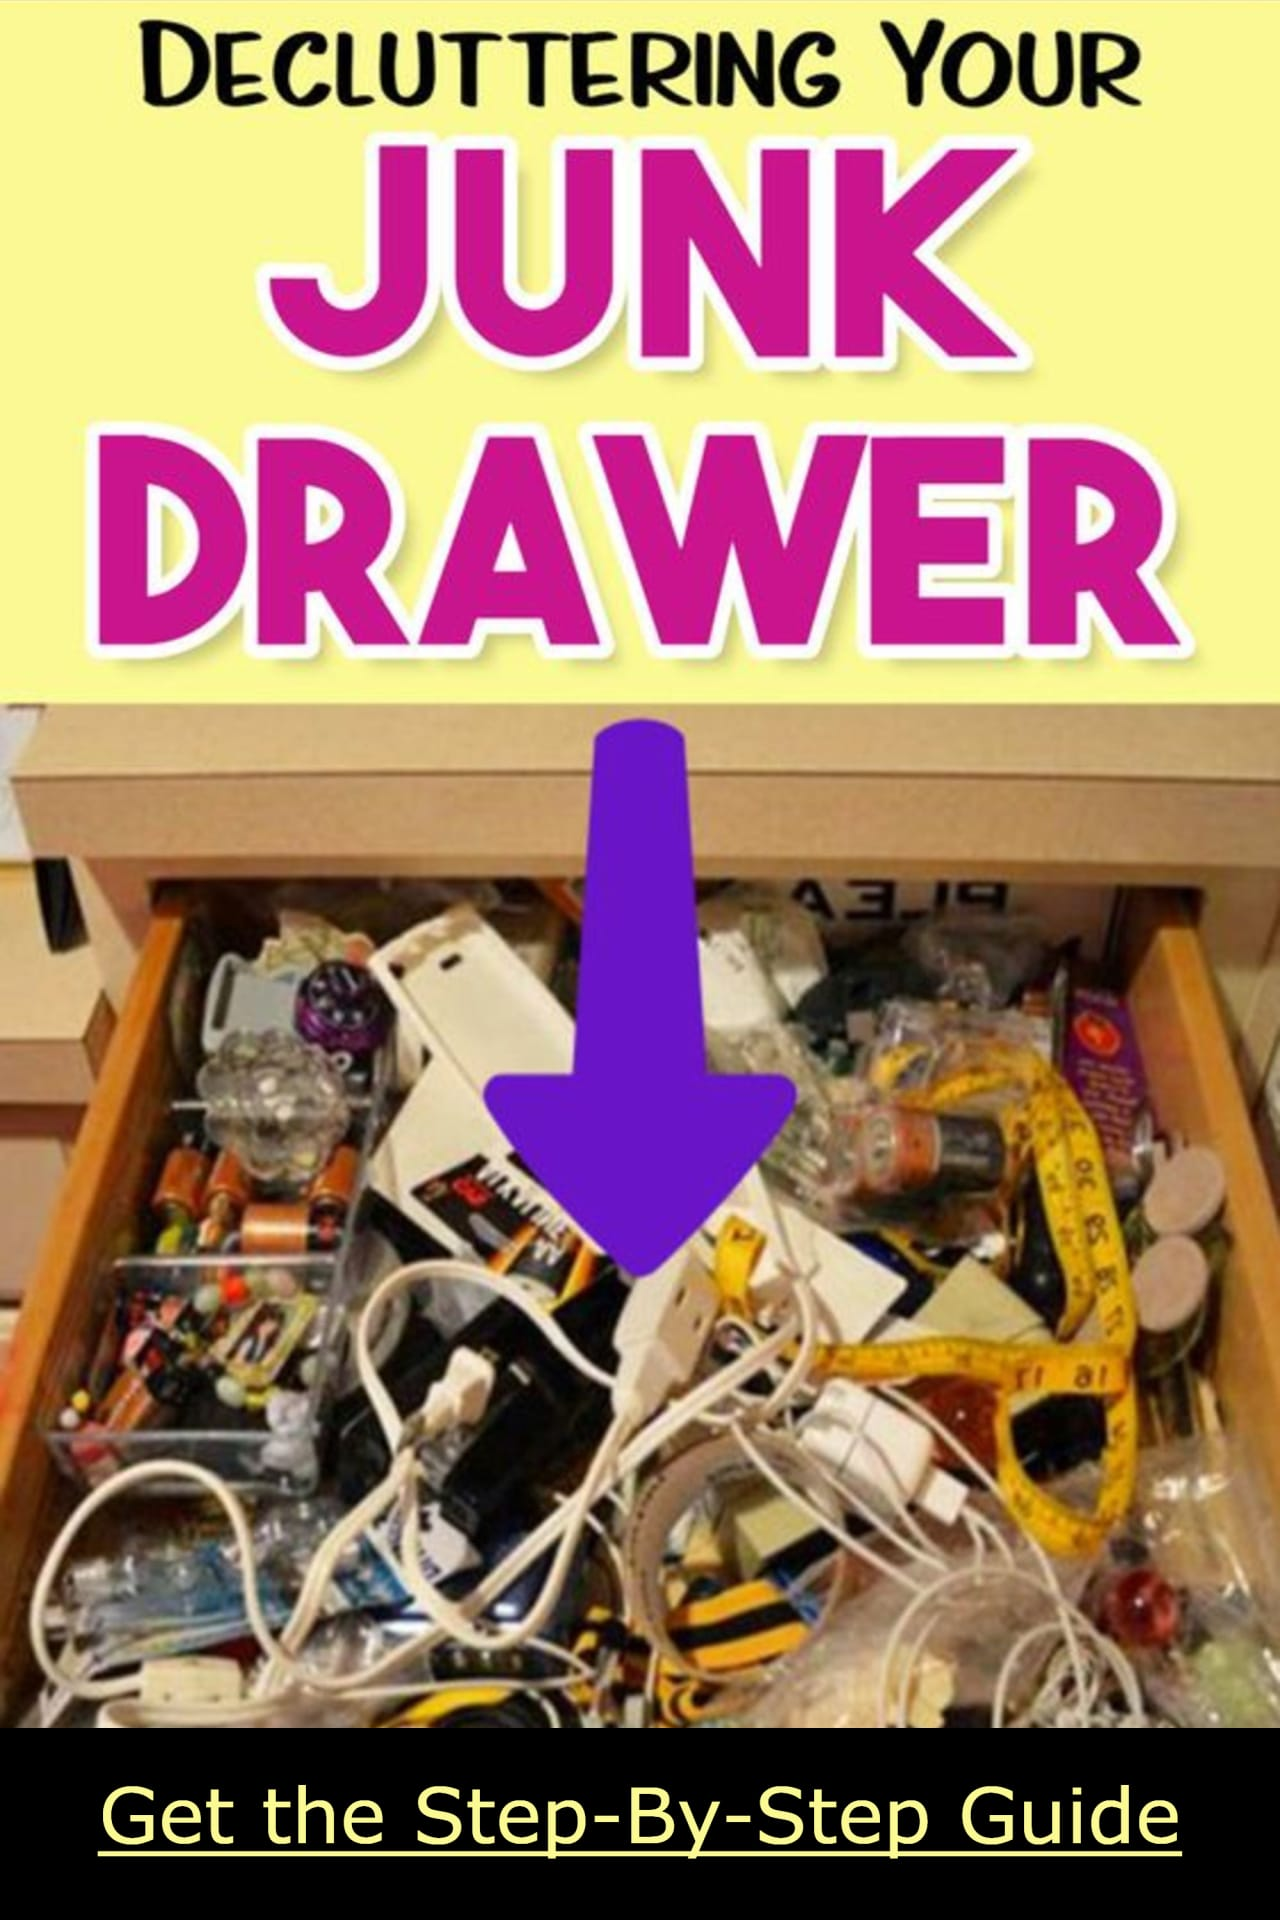 How to clean a cluttered house FAST... step by step, room by room, drawer by drawer.  Declutter and organizing your kitchen junk drawers the easy way